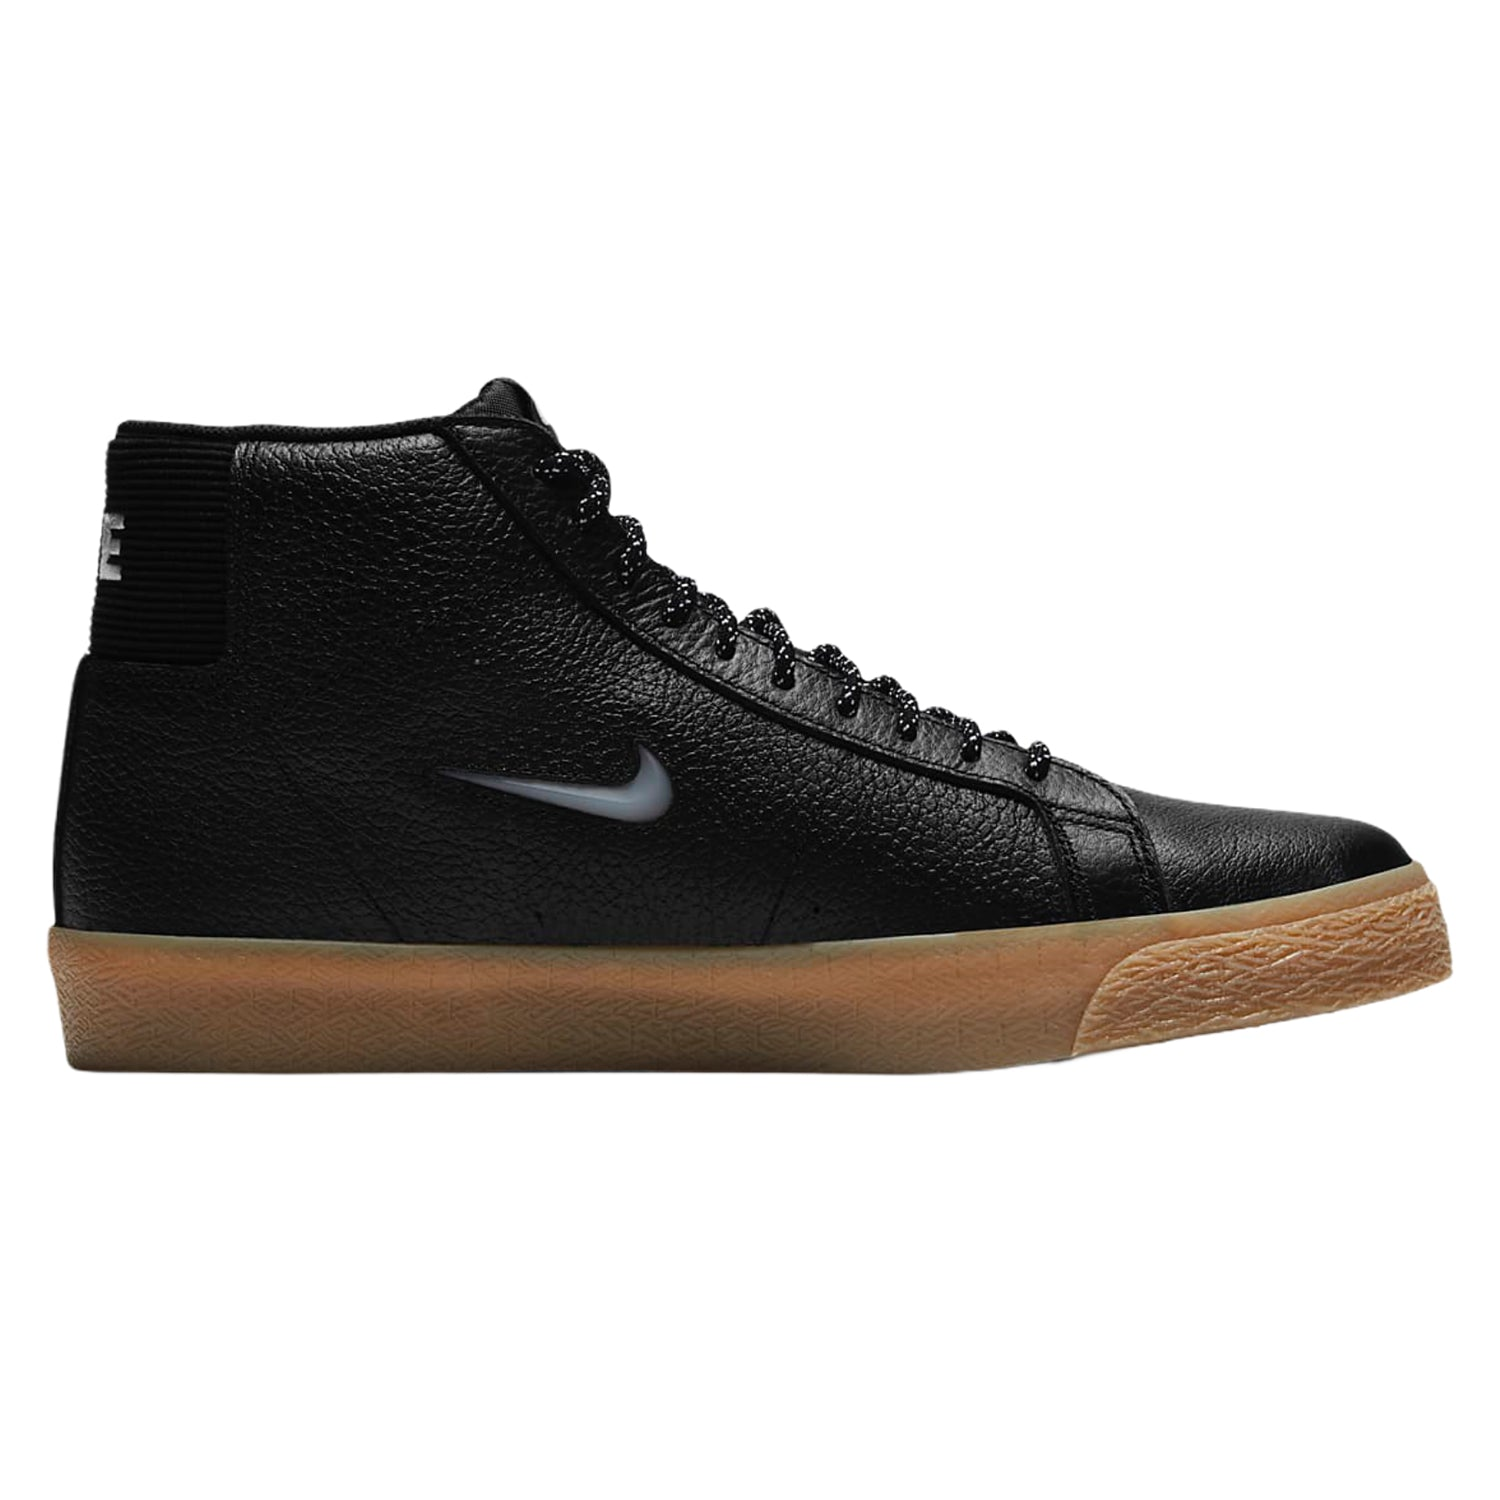 Nike SB Zoom Blazer Mid Premium Black/Gum Light Brown/White